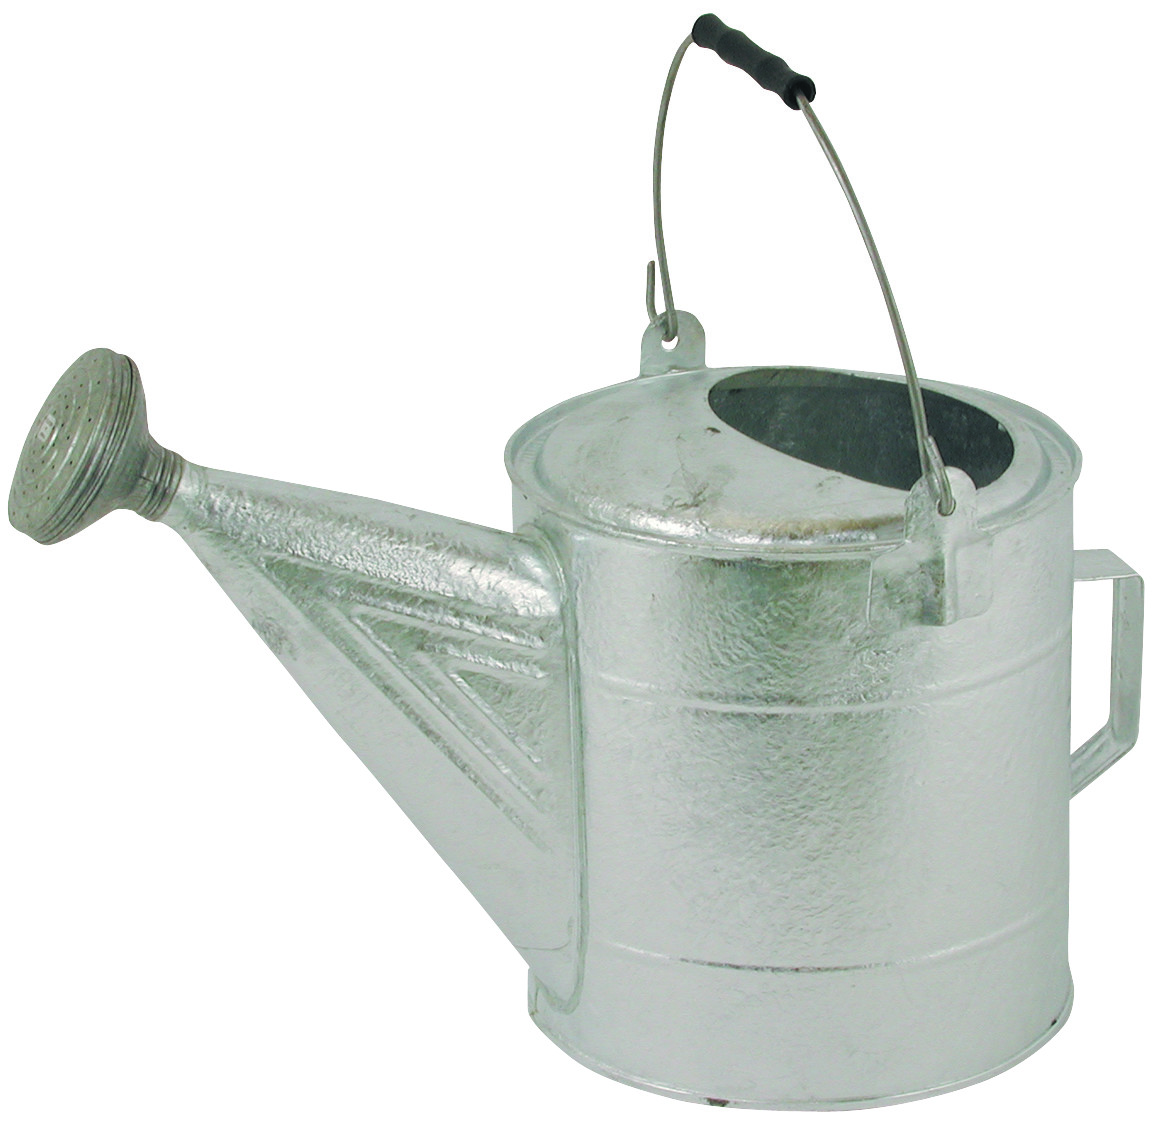 Galvanized Watering Cans Behrens 210 10 Quart Sprinkler Watering Can Hot Dipped